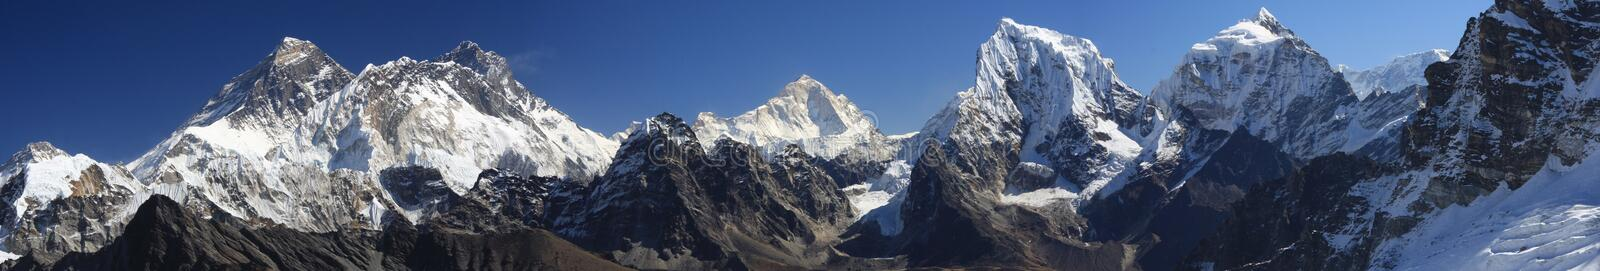 Panorama of Everest. Panoramic photo of Everest and other mountains from the Renjo Pass. Gokyo region, Nepal stock image